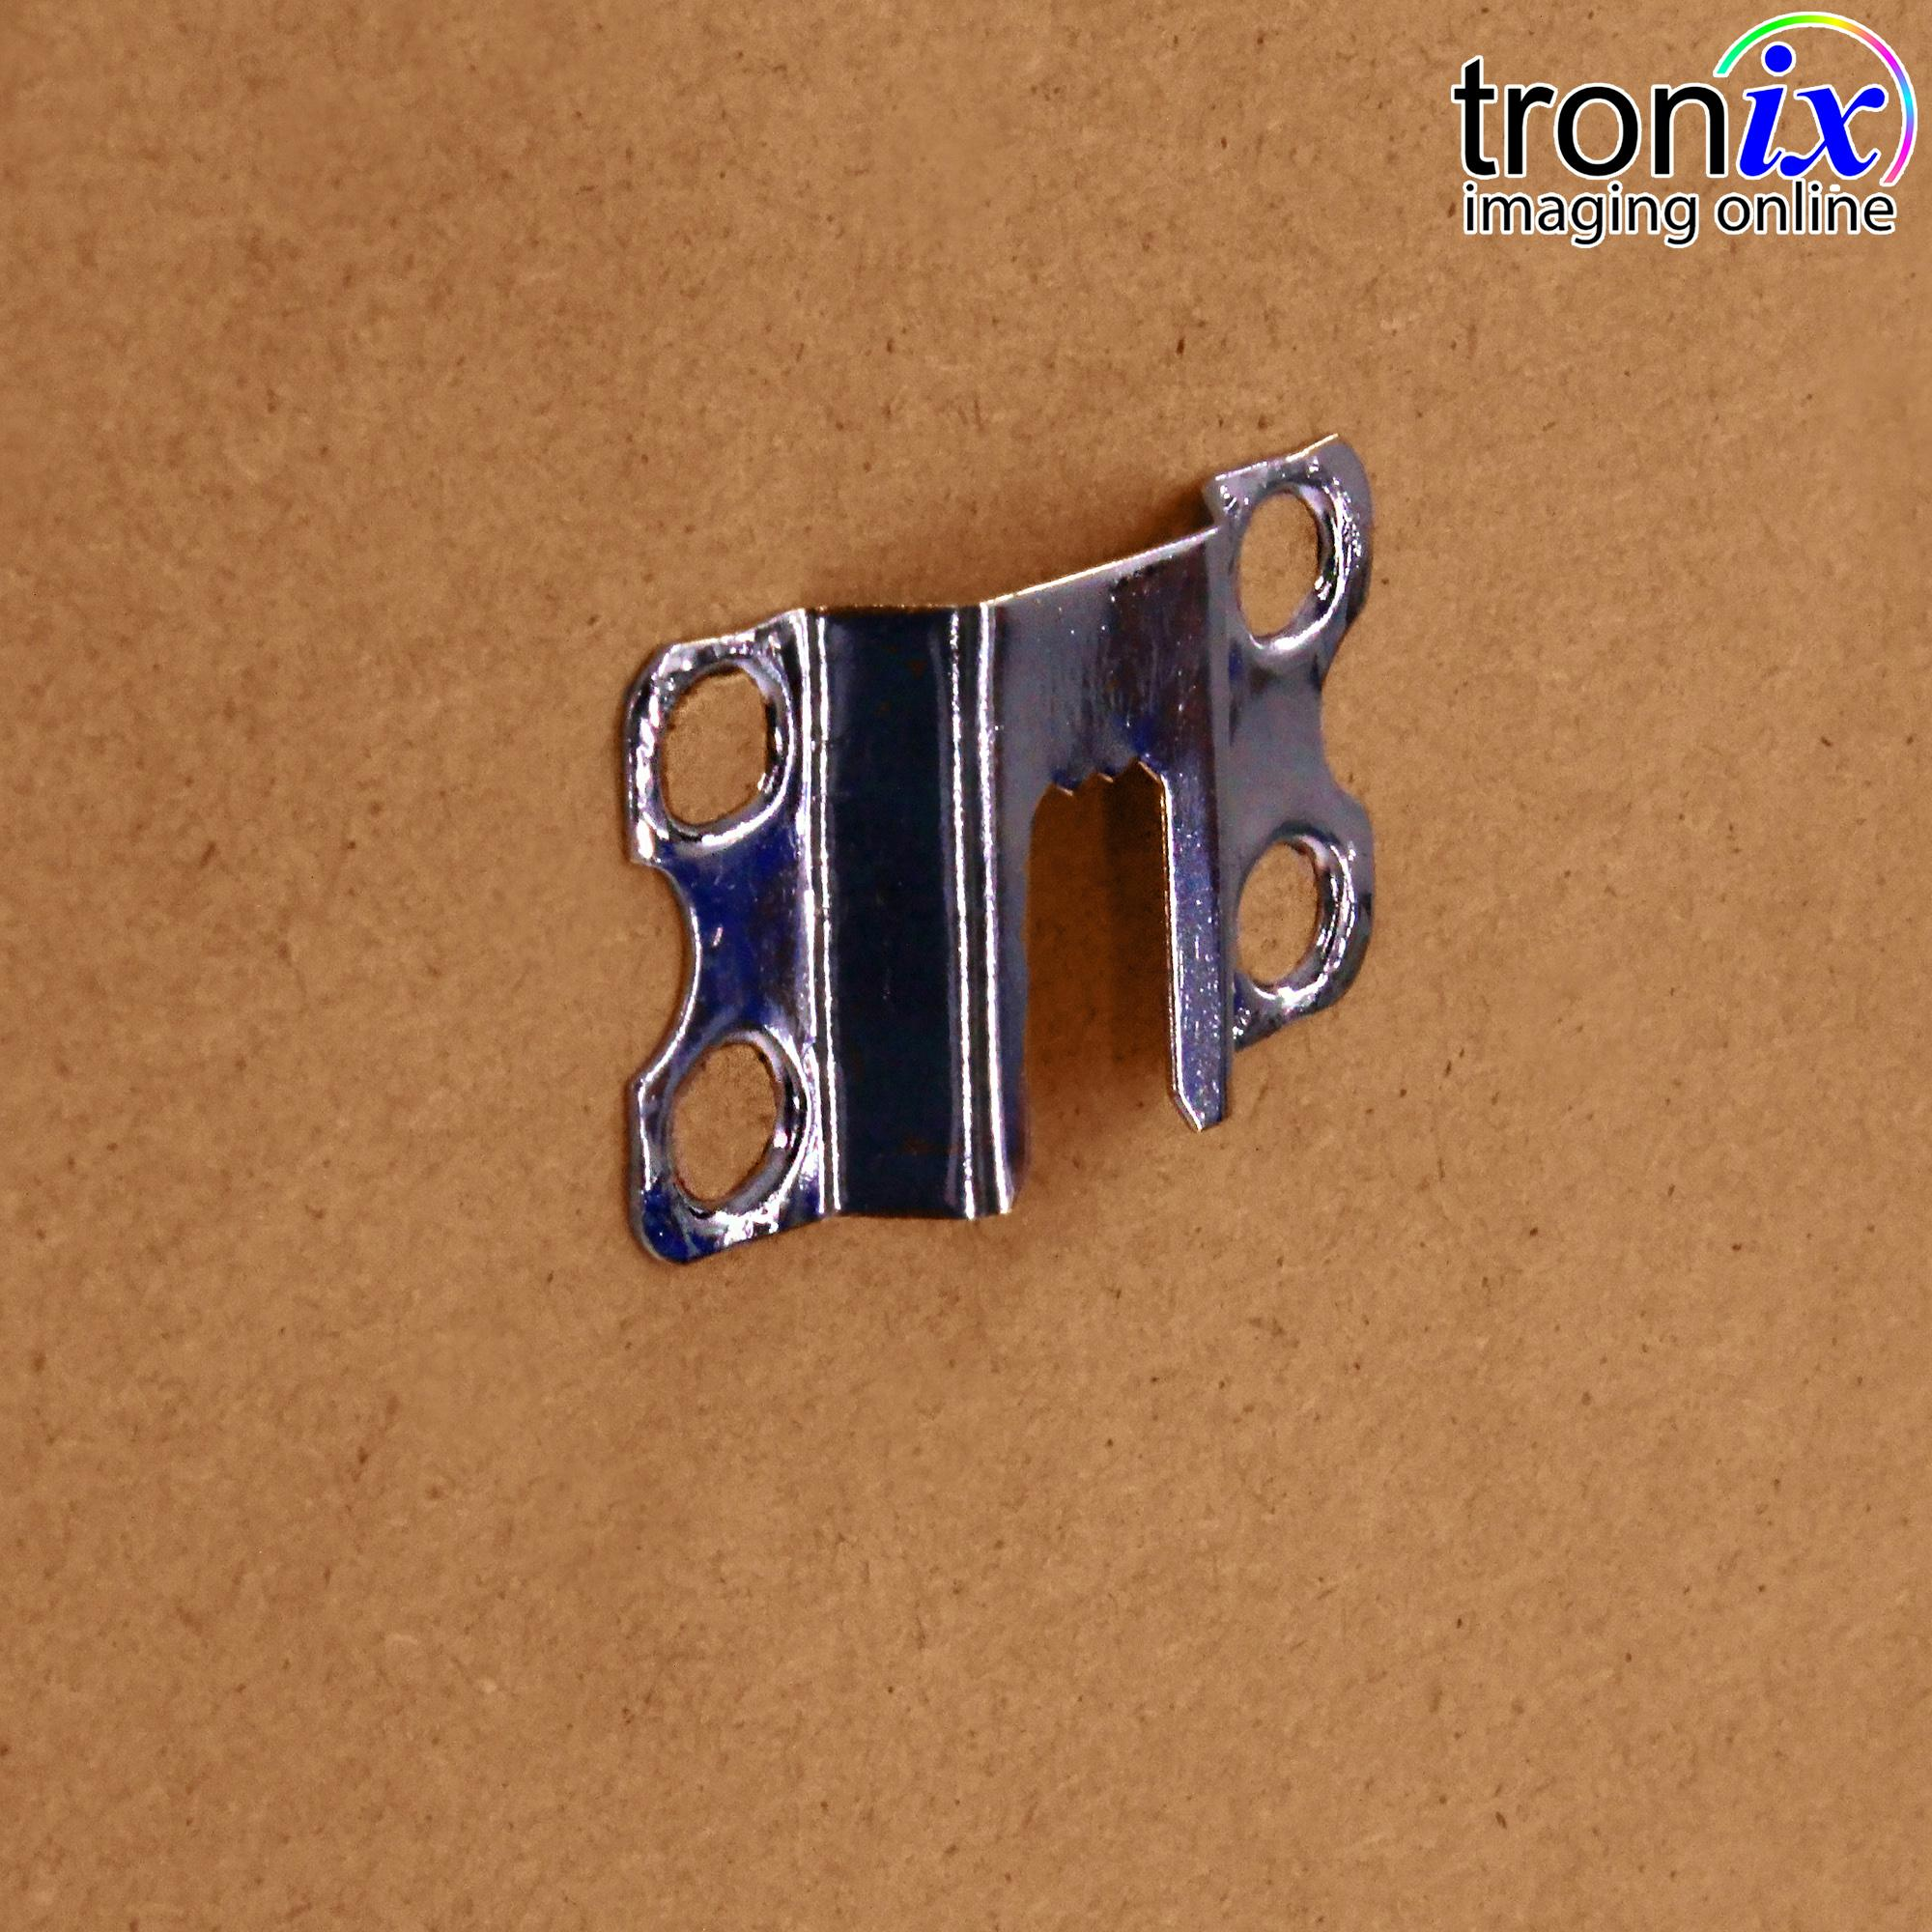 troniximaging Medal Frame 6pc  One(1) piece Medal Glass Frame for 6 pcs   Medals and 4R Size 4 15 x 5 85